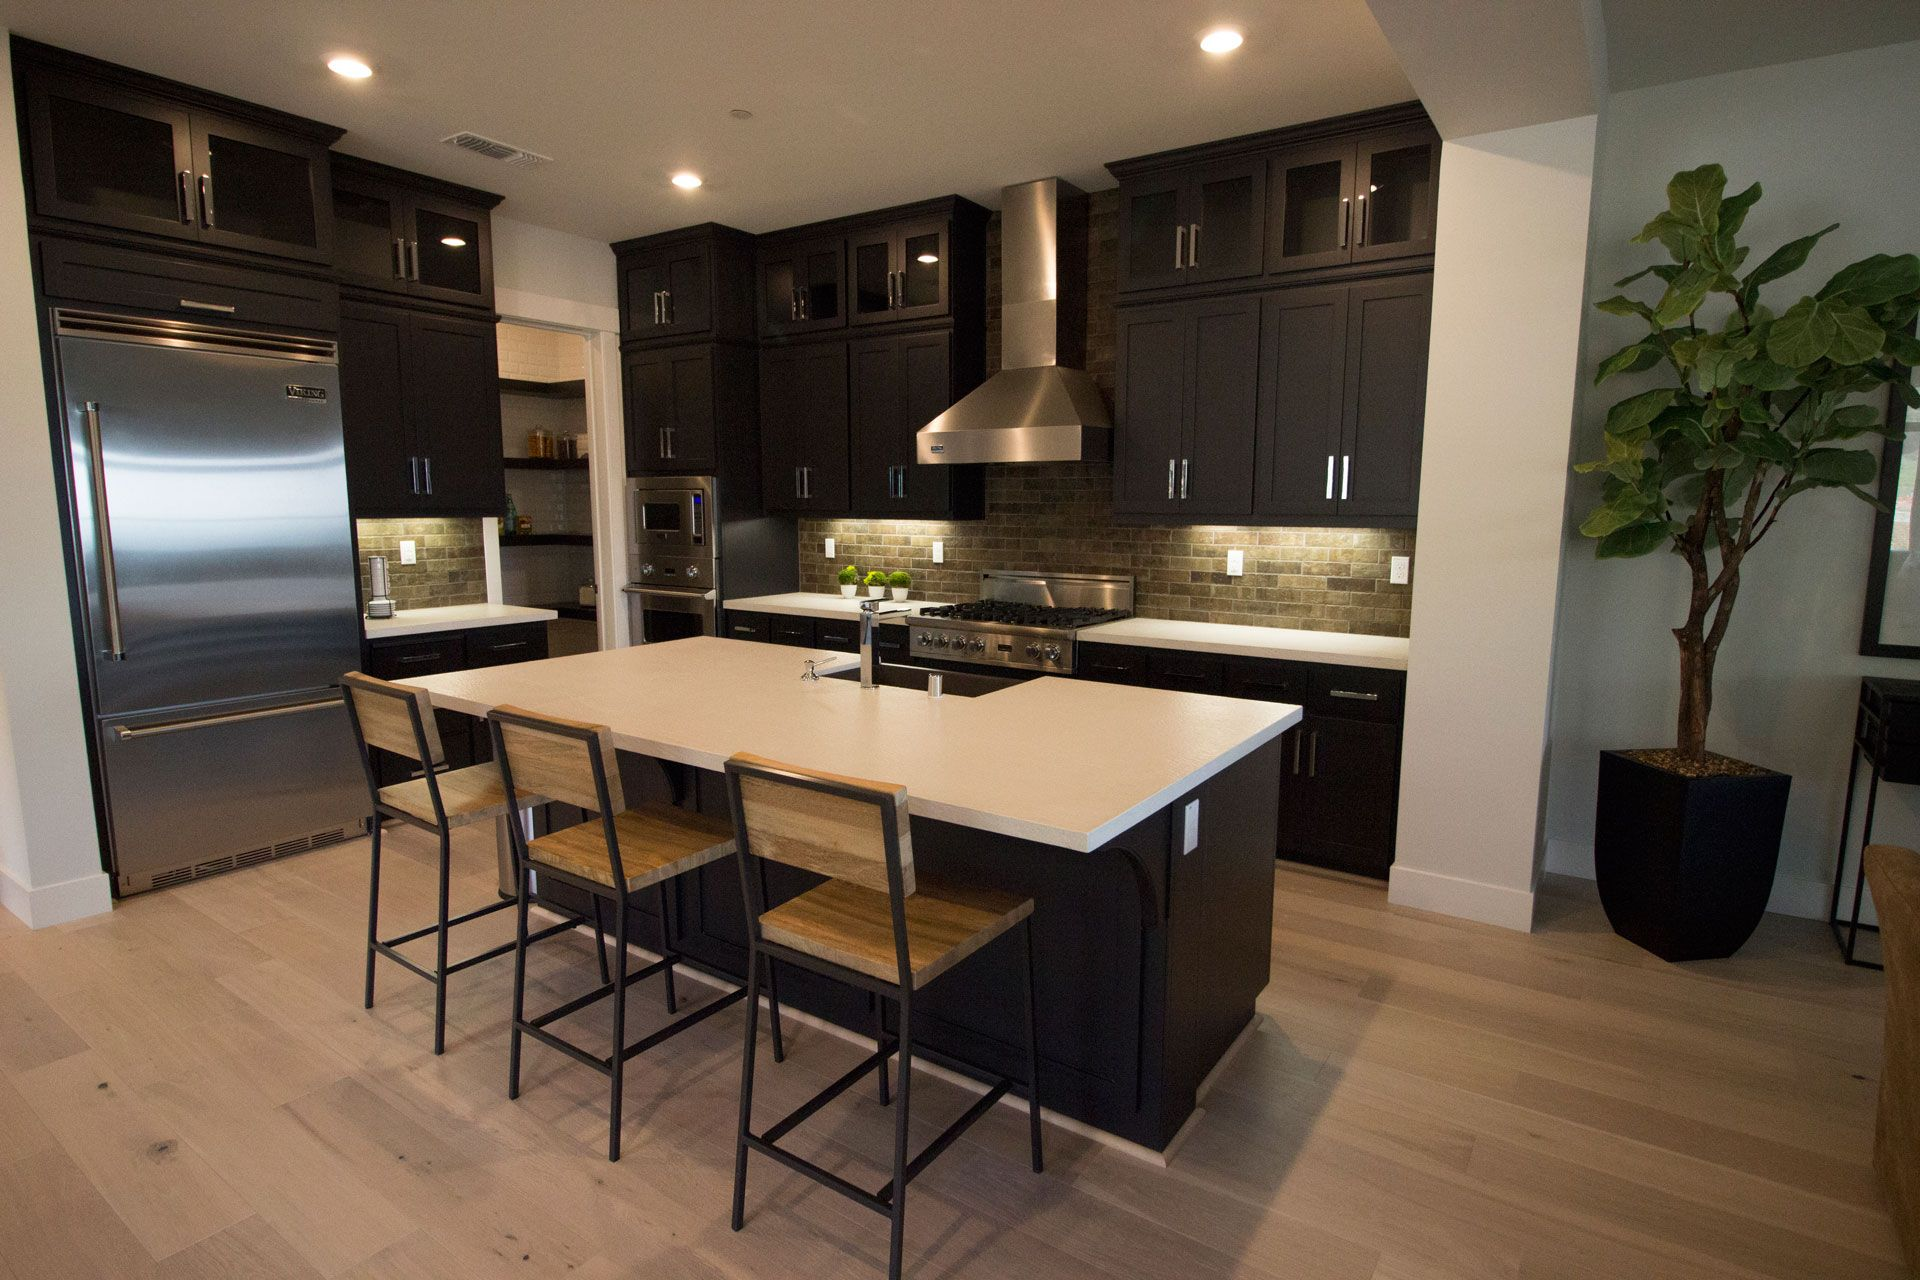 Kitchen featured in the Penthouse By Discovery Homes in Oakland-Alameda, CA